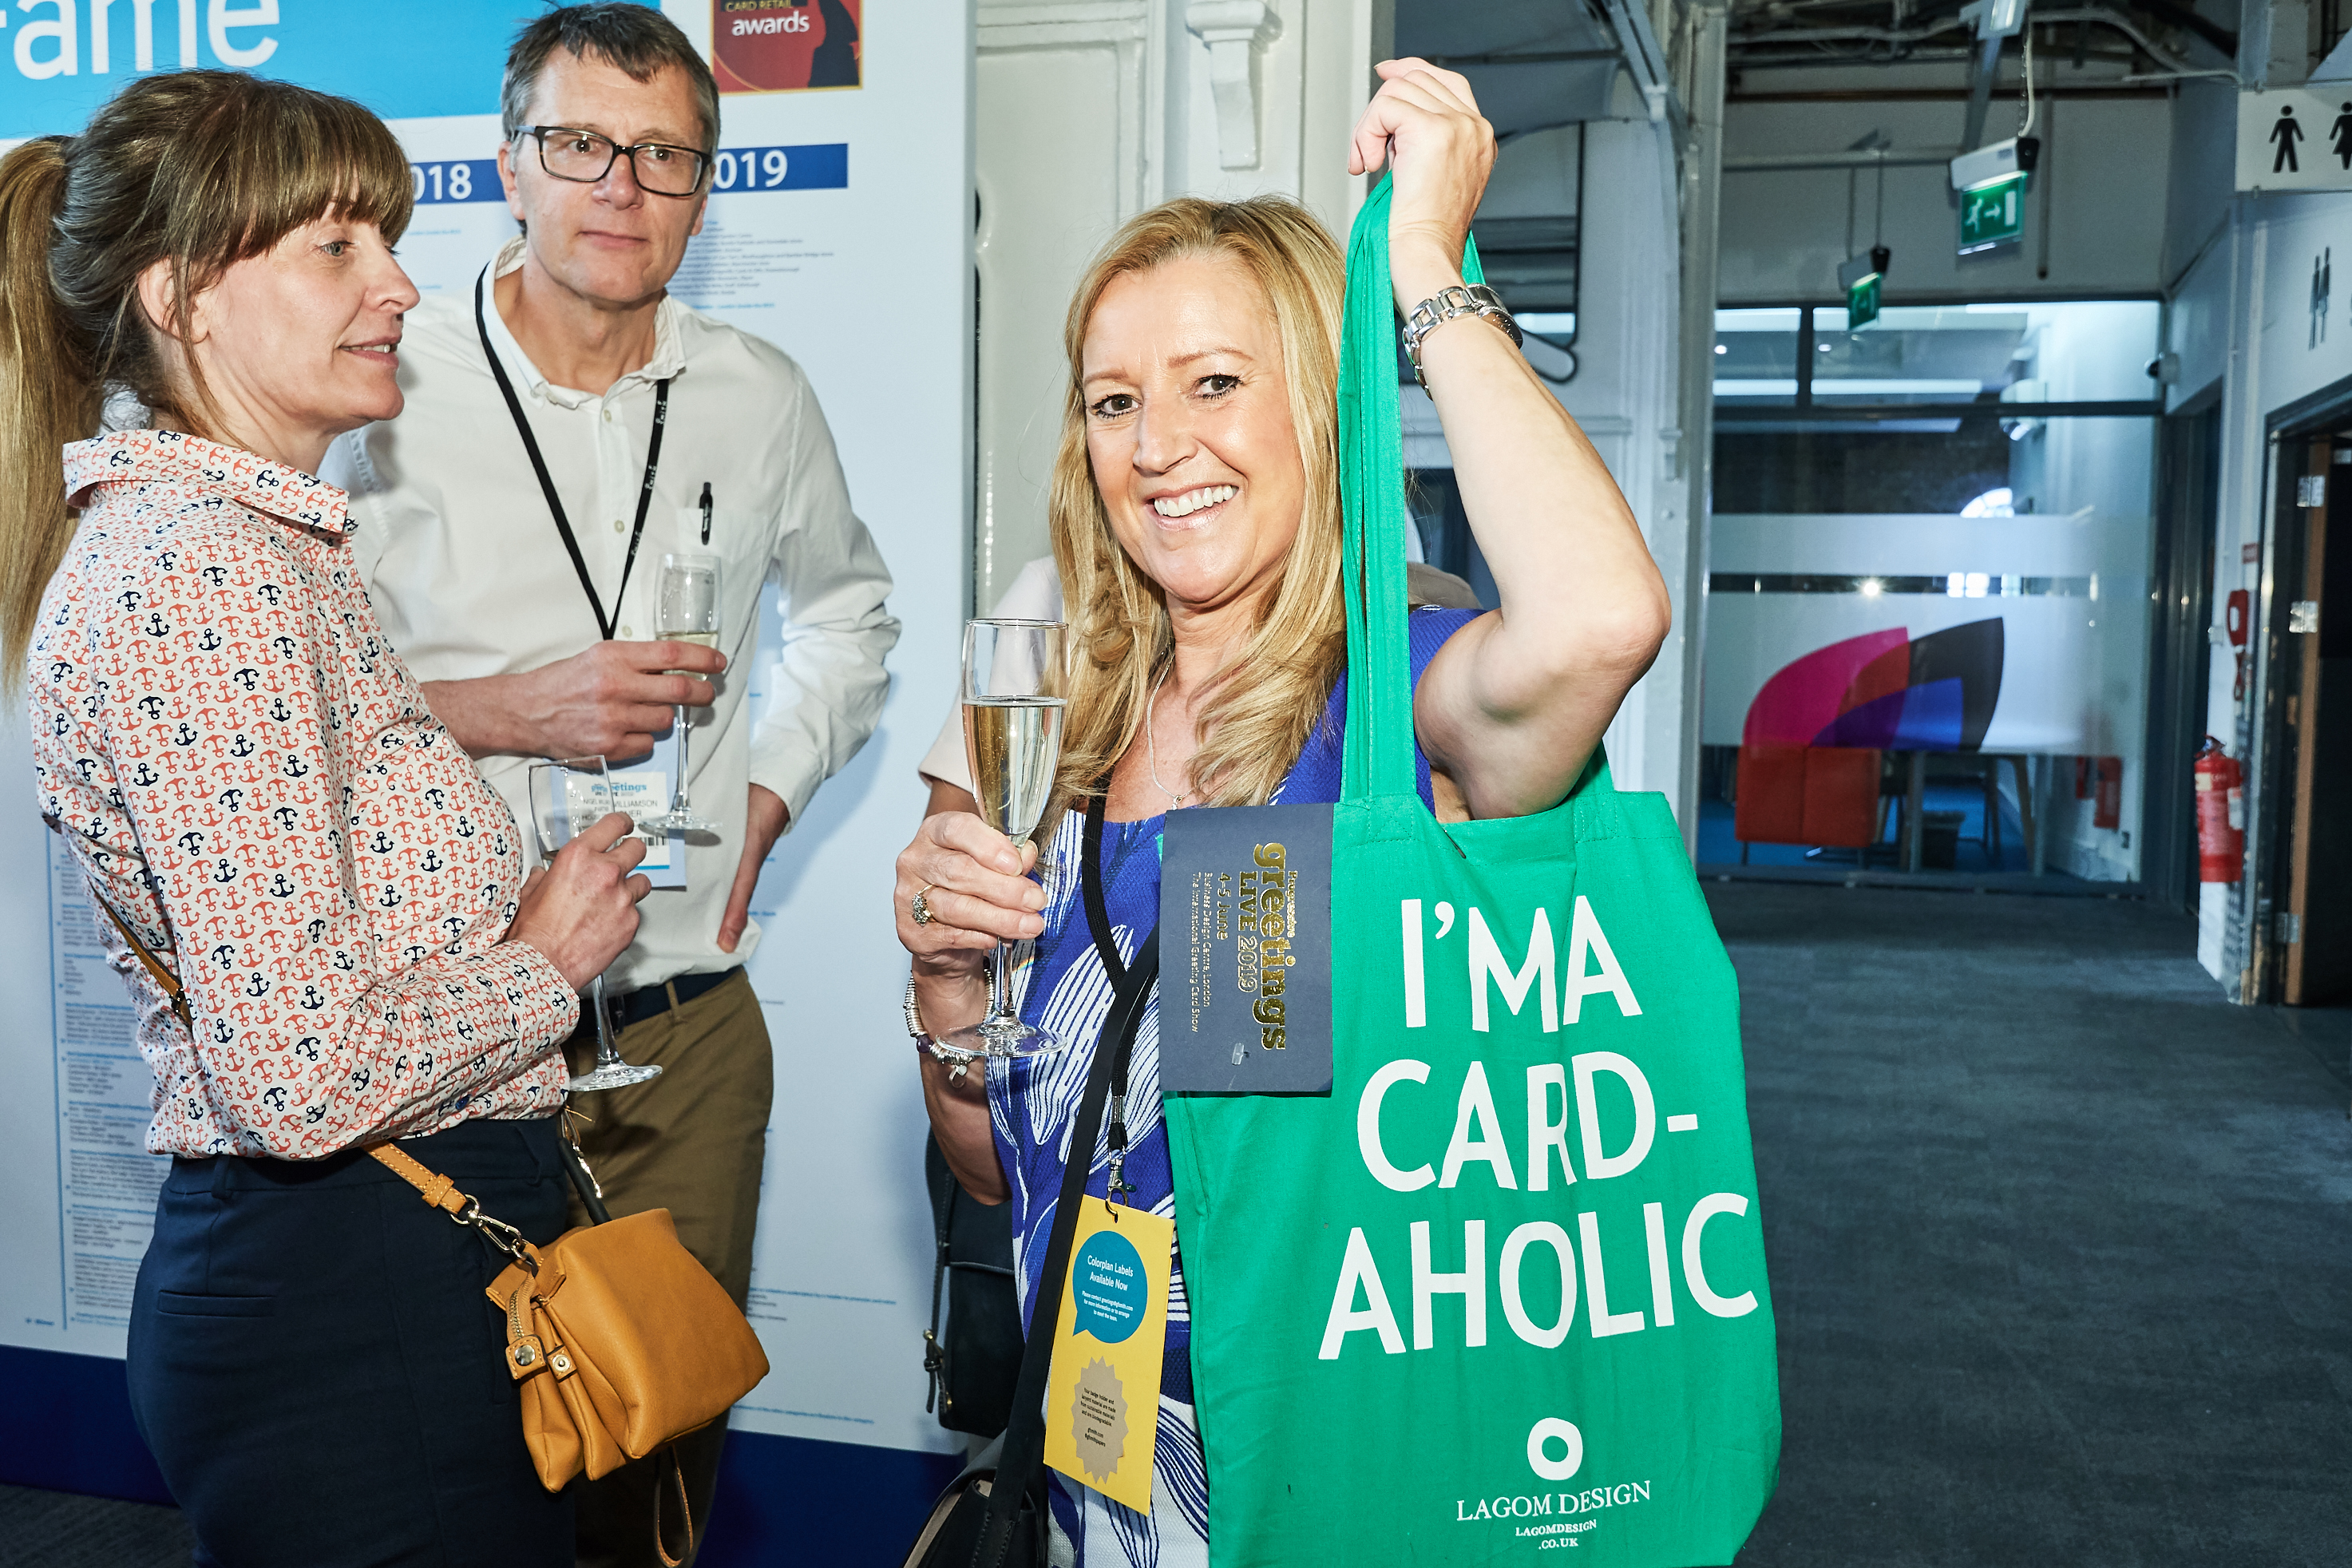 Above: Unit 7's Andrea PInder with her PG Live 'I'm a card-aholic' tote bag (produced by Lagom).